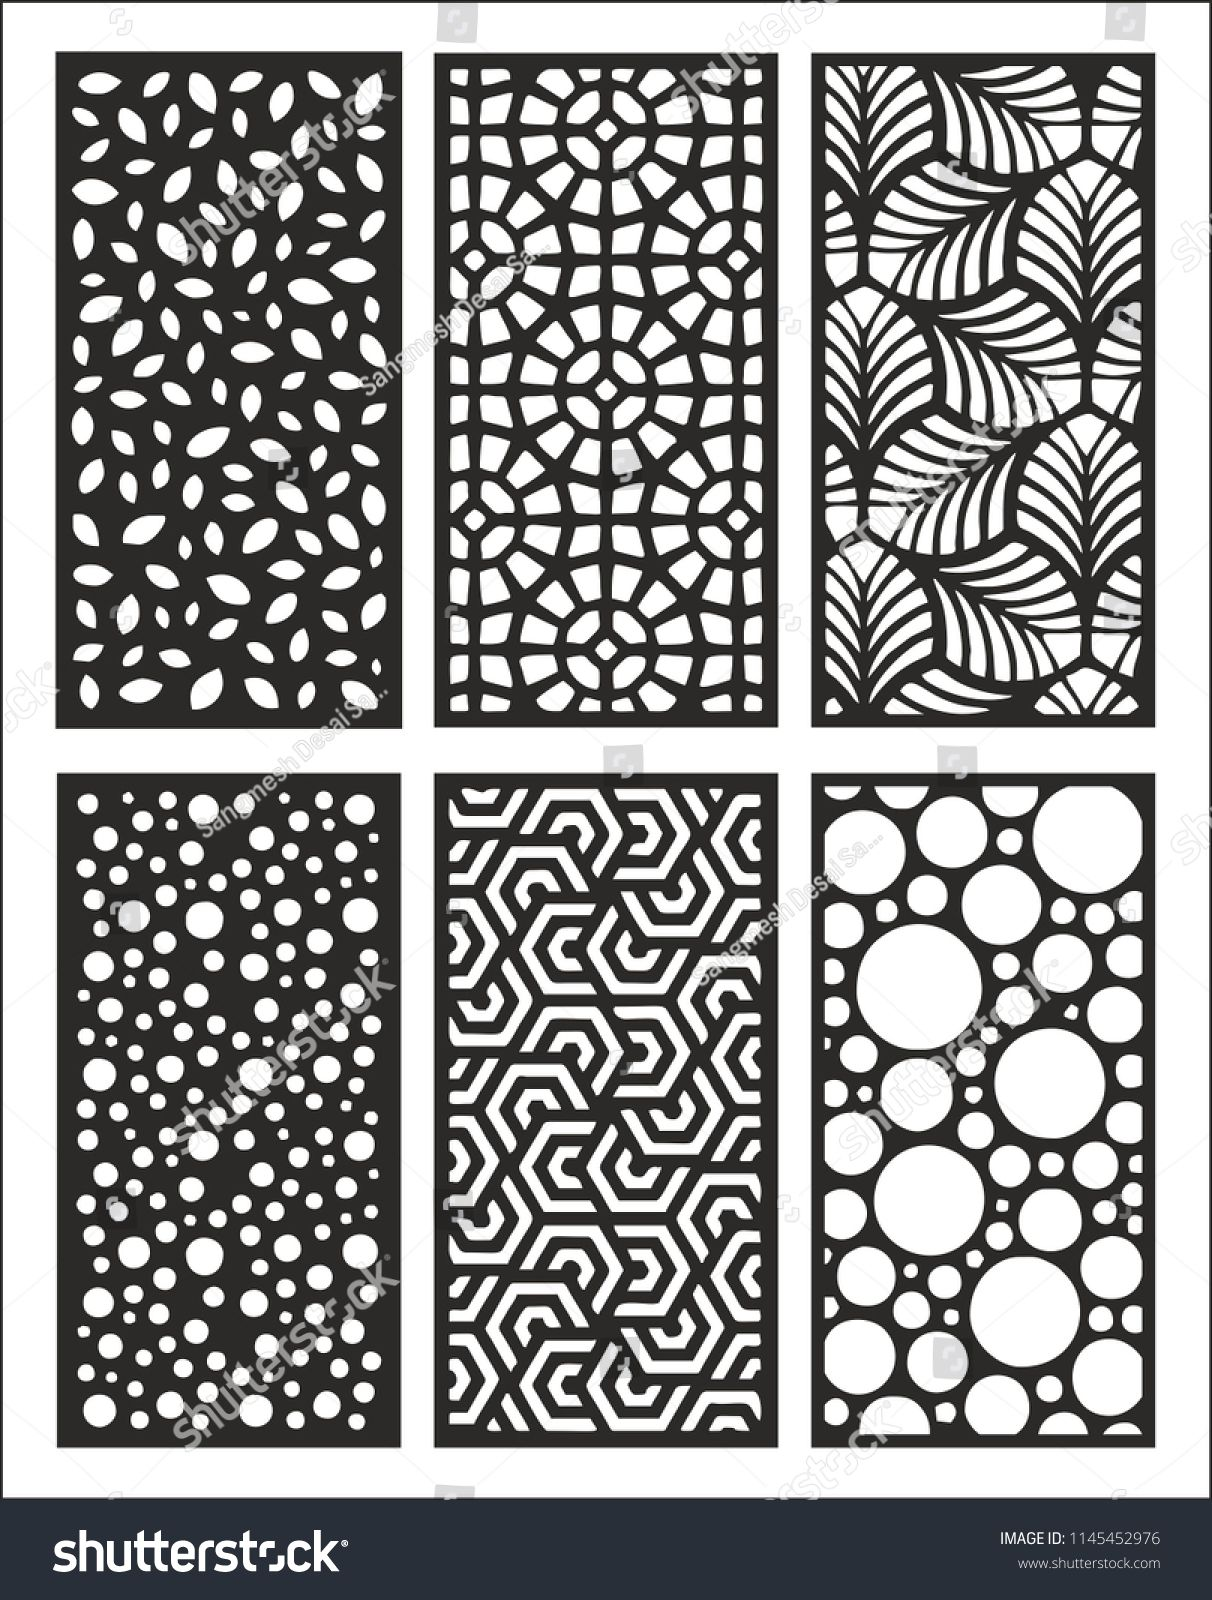 Pin On Coloring Art Pages